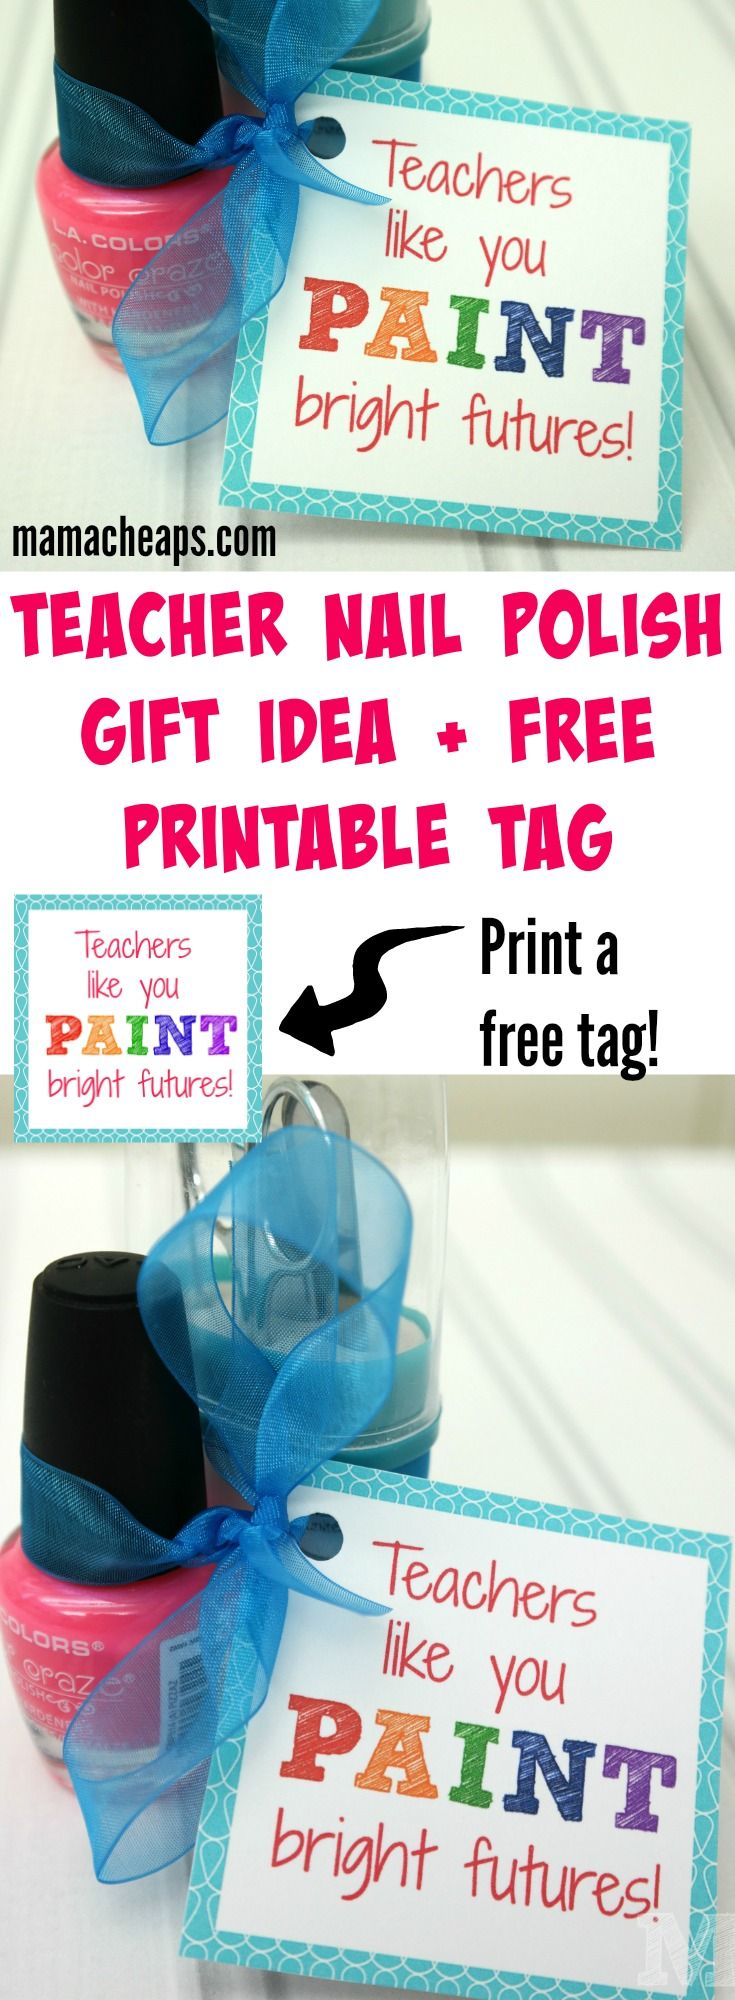 Teacher Nail Polish Gift Idea + FREE Printable Tag